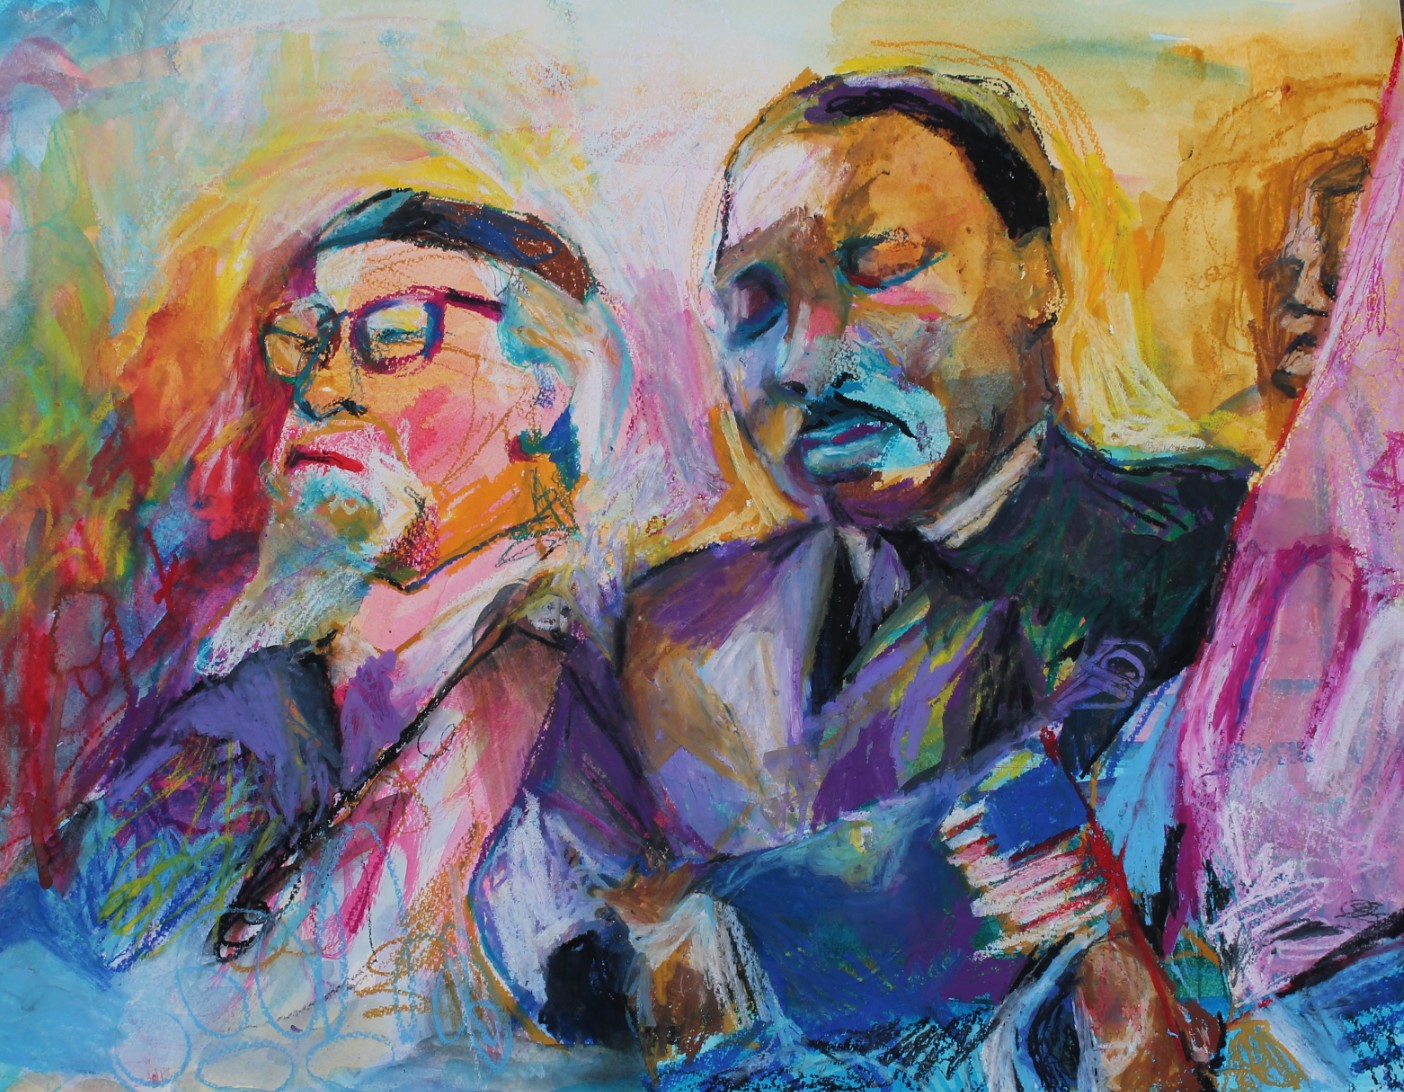 Heschel and King - The Complications of Alliance